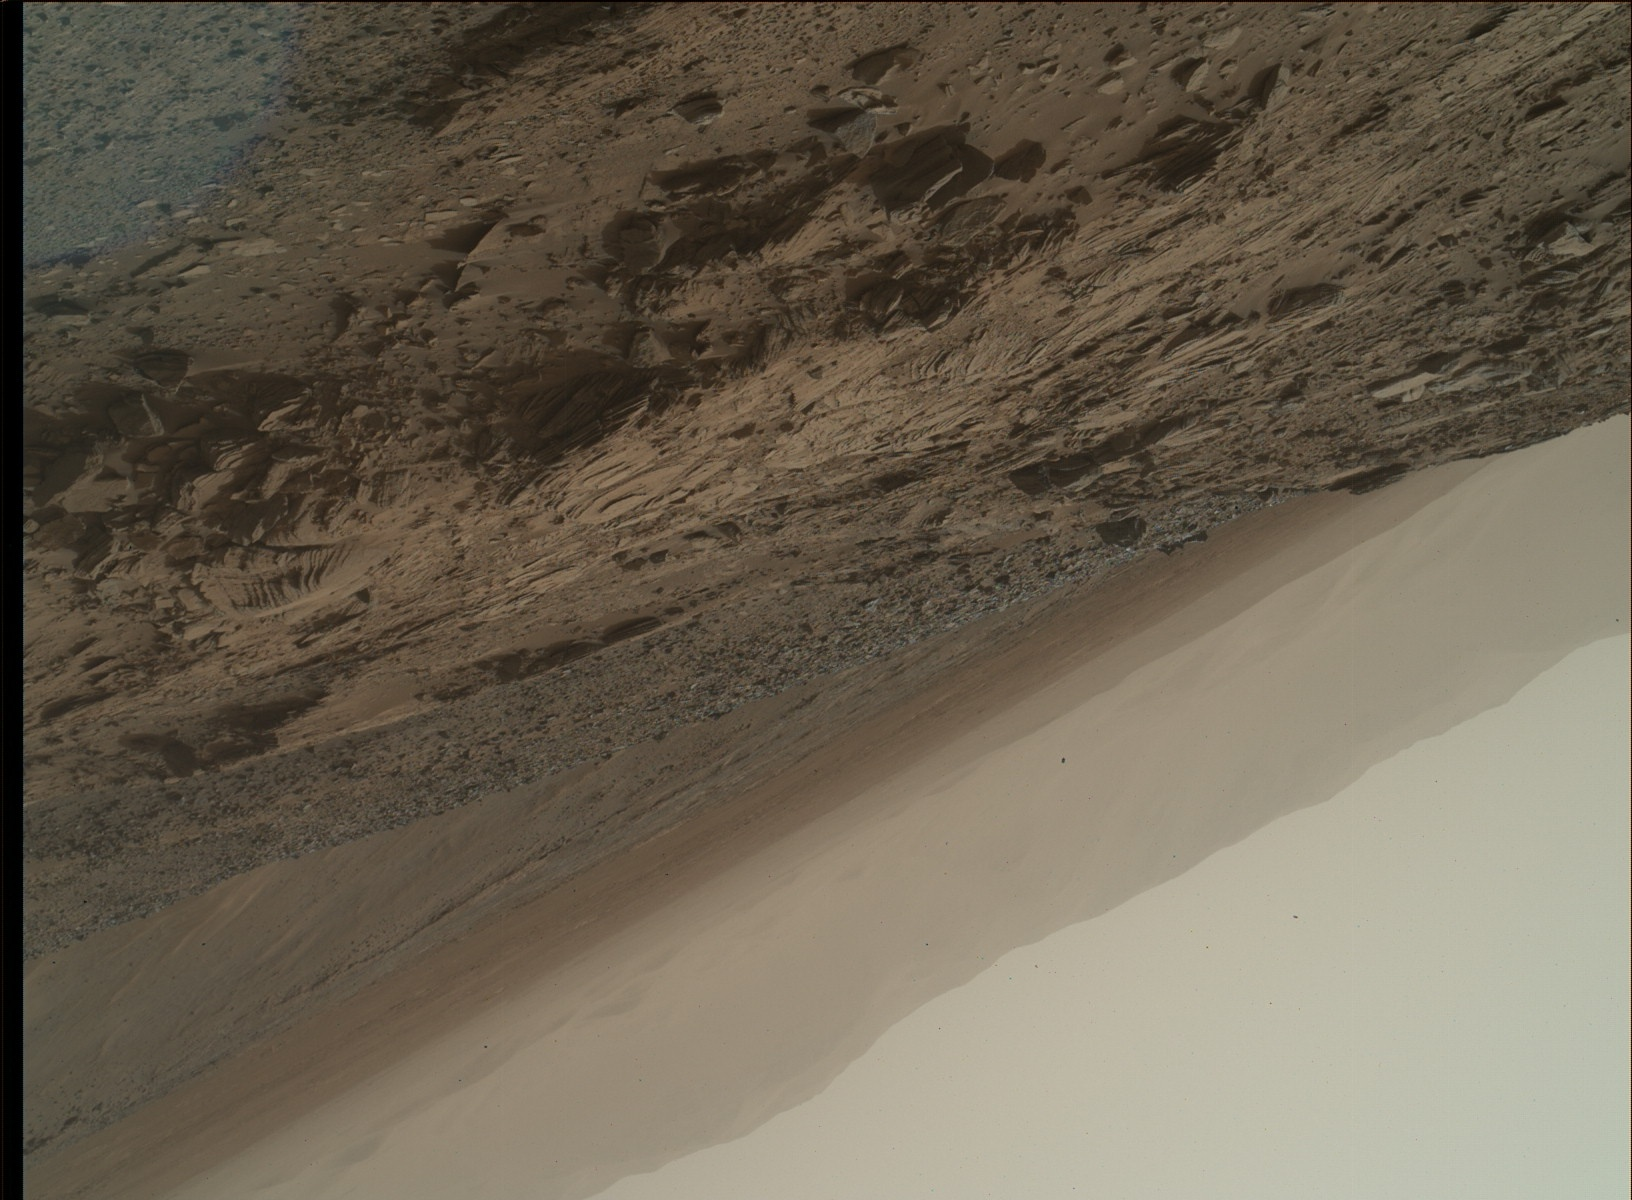 mars rovers destroyed - photo #8